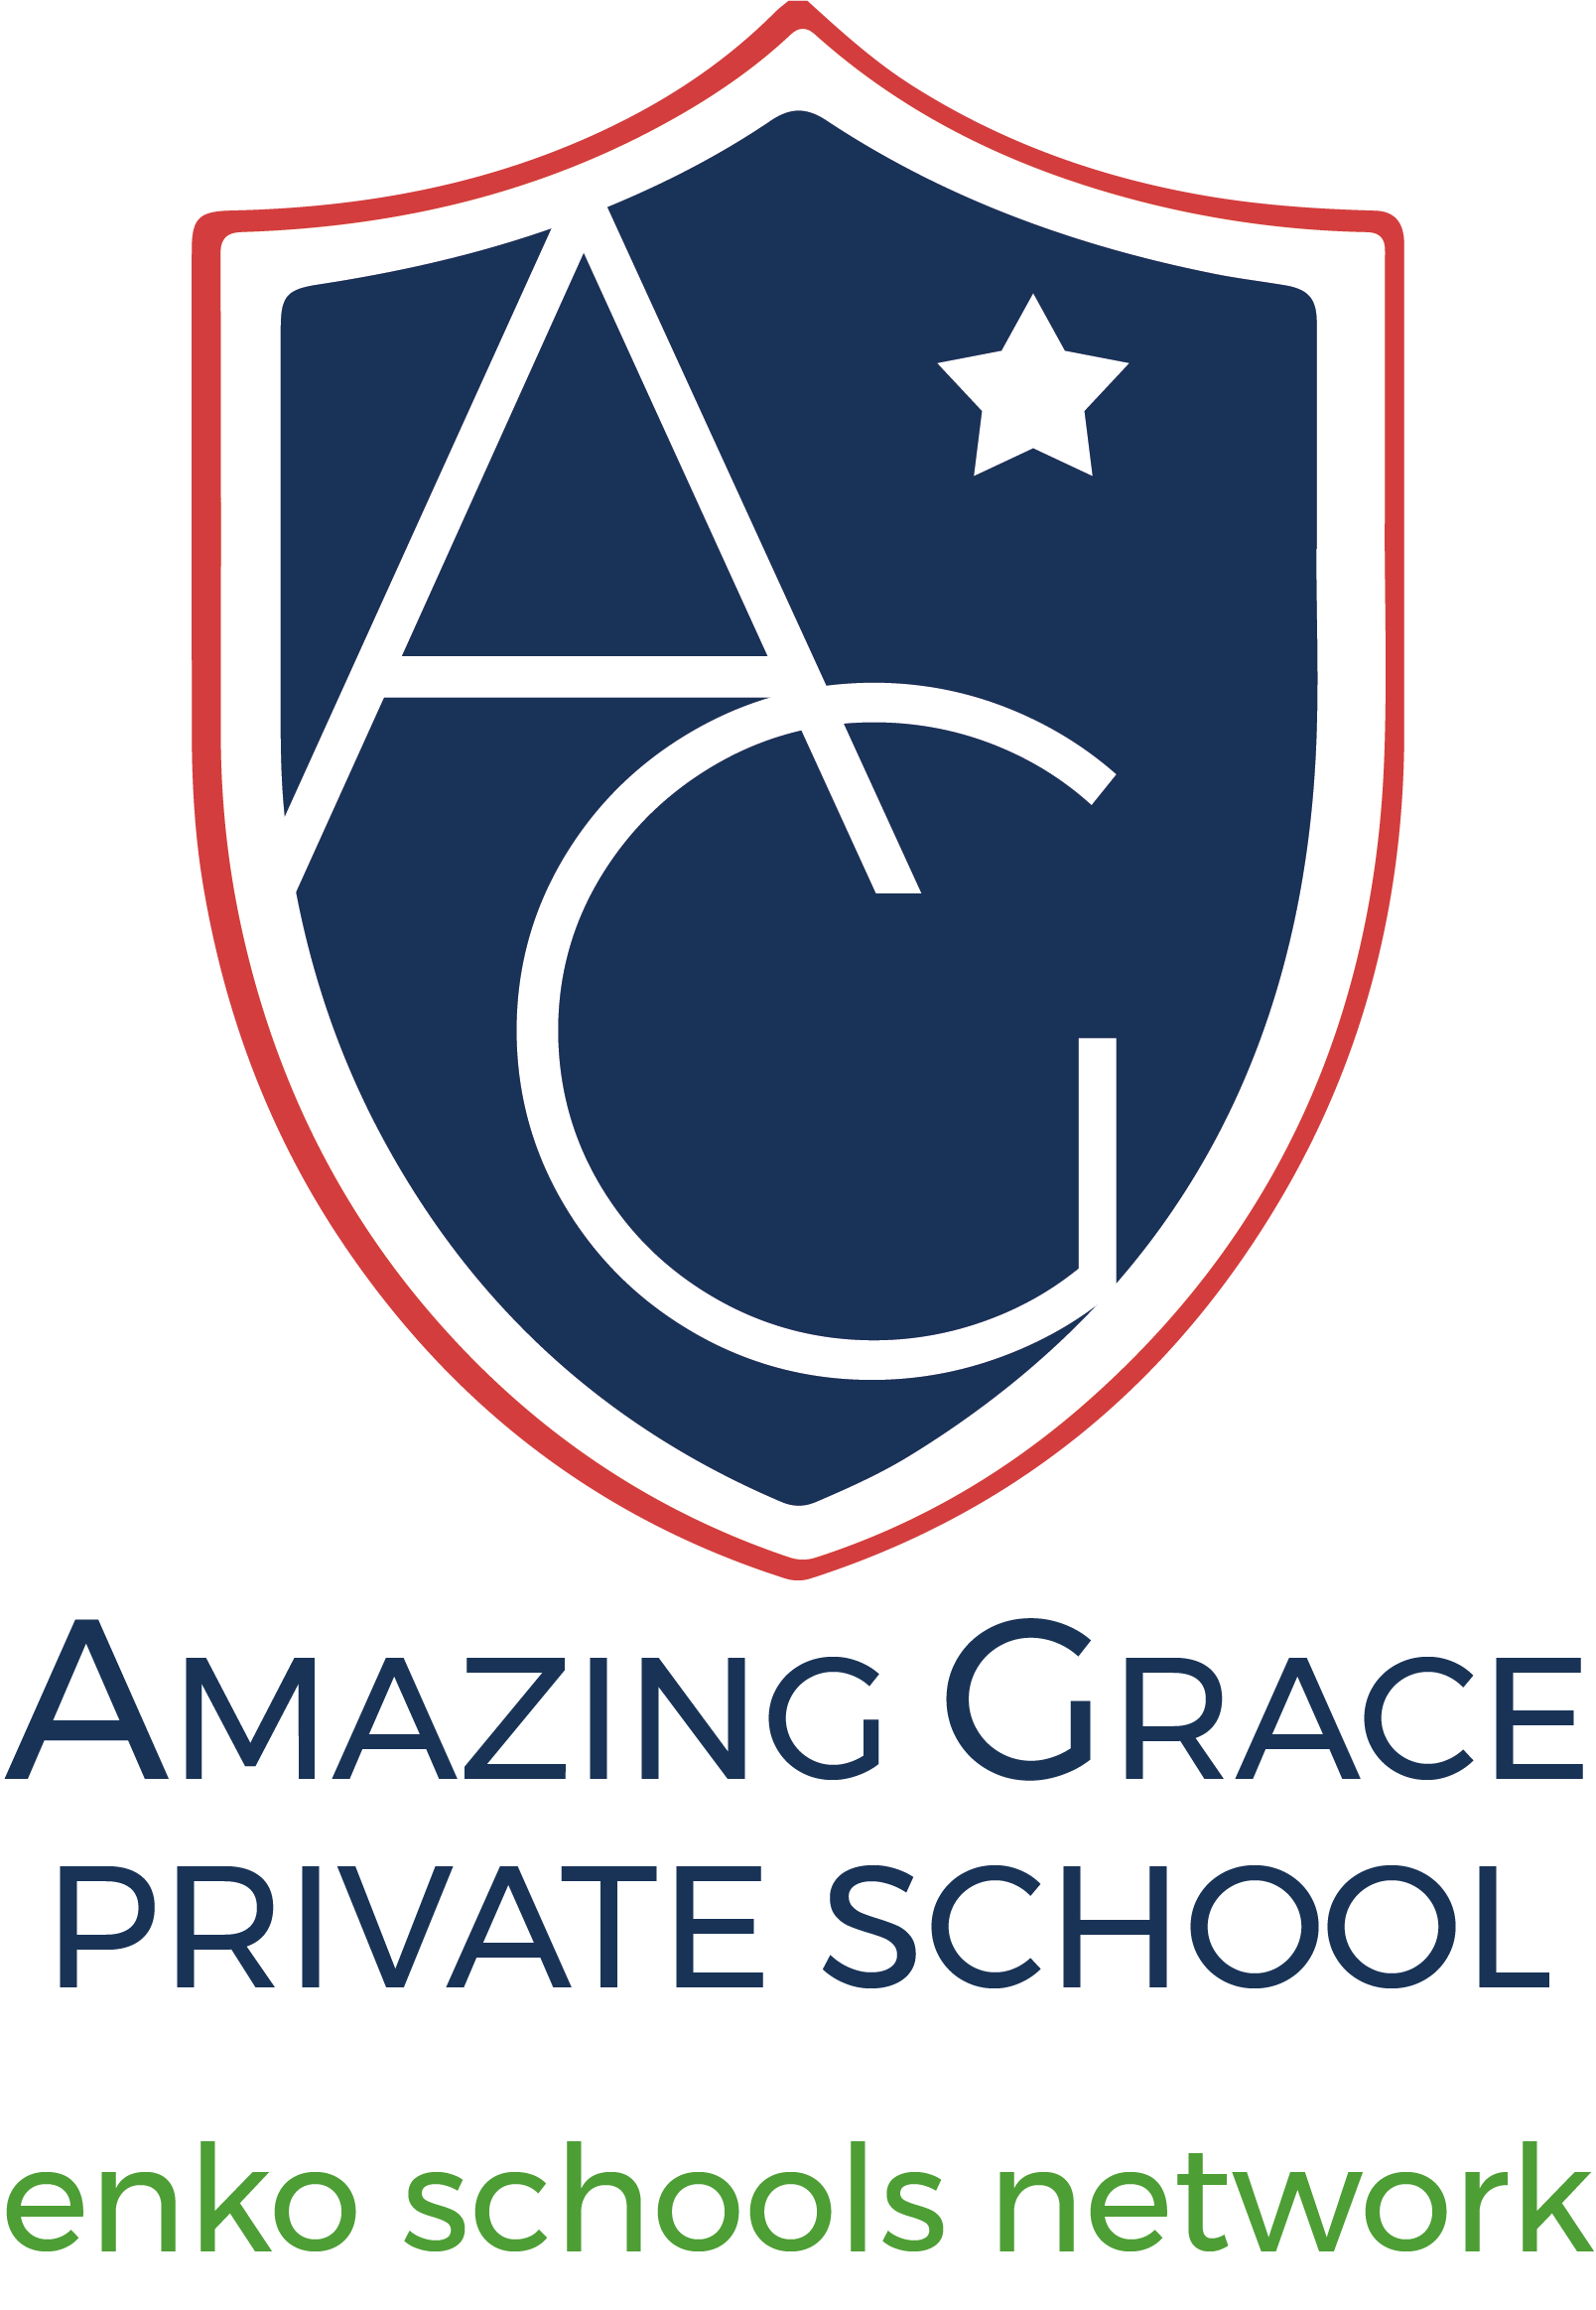 Amazing Grace Private School